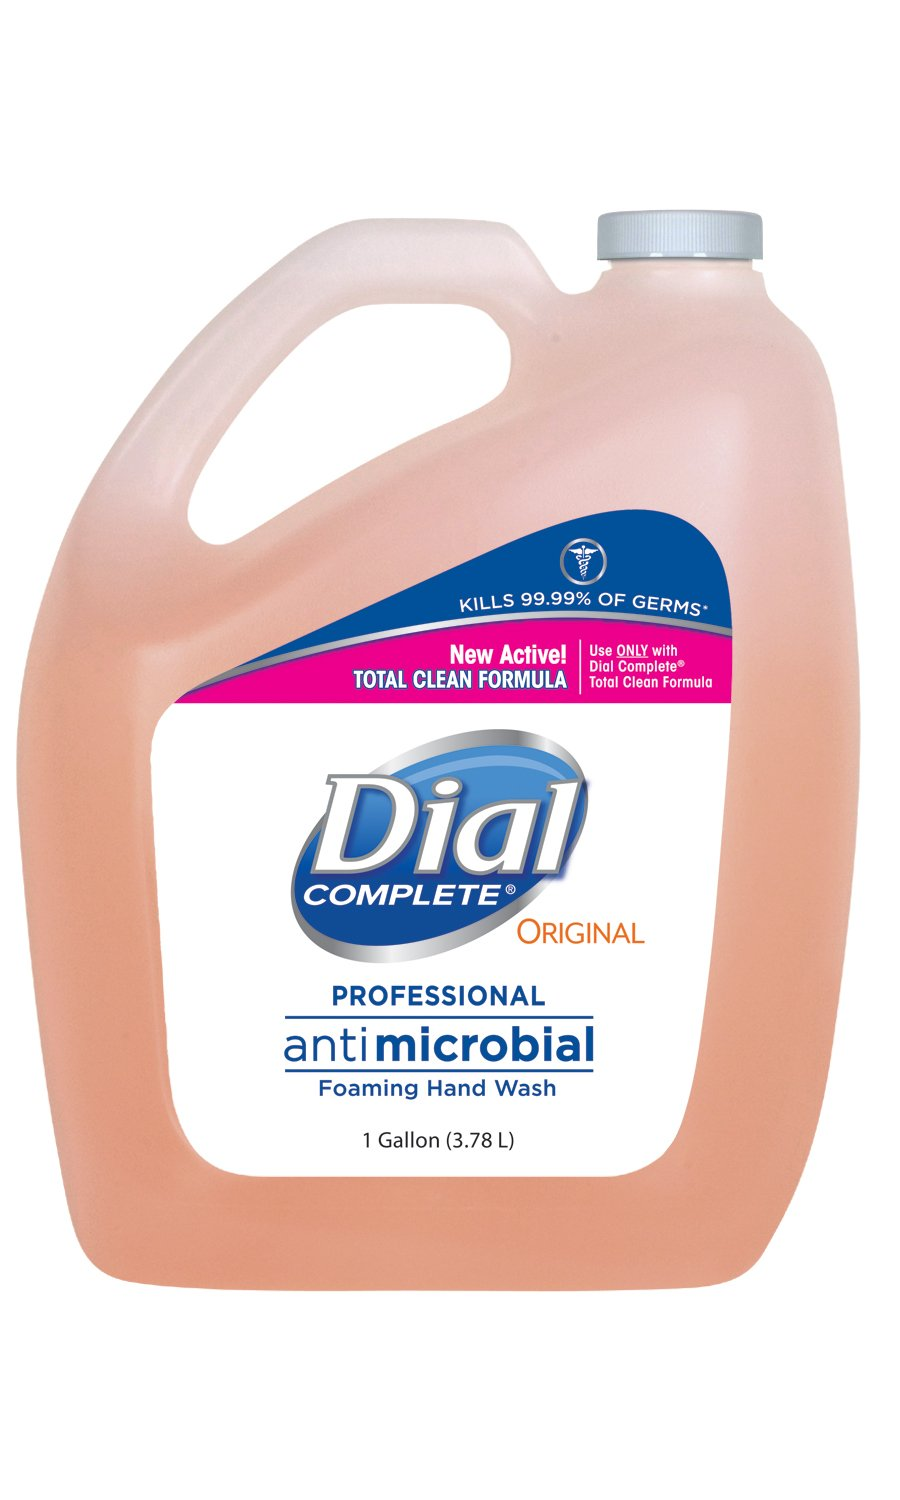 Dial Complete 1434633 Antimicrobial Foaming Hand Soap, 1 Gallon Bottle (Pack of 4)